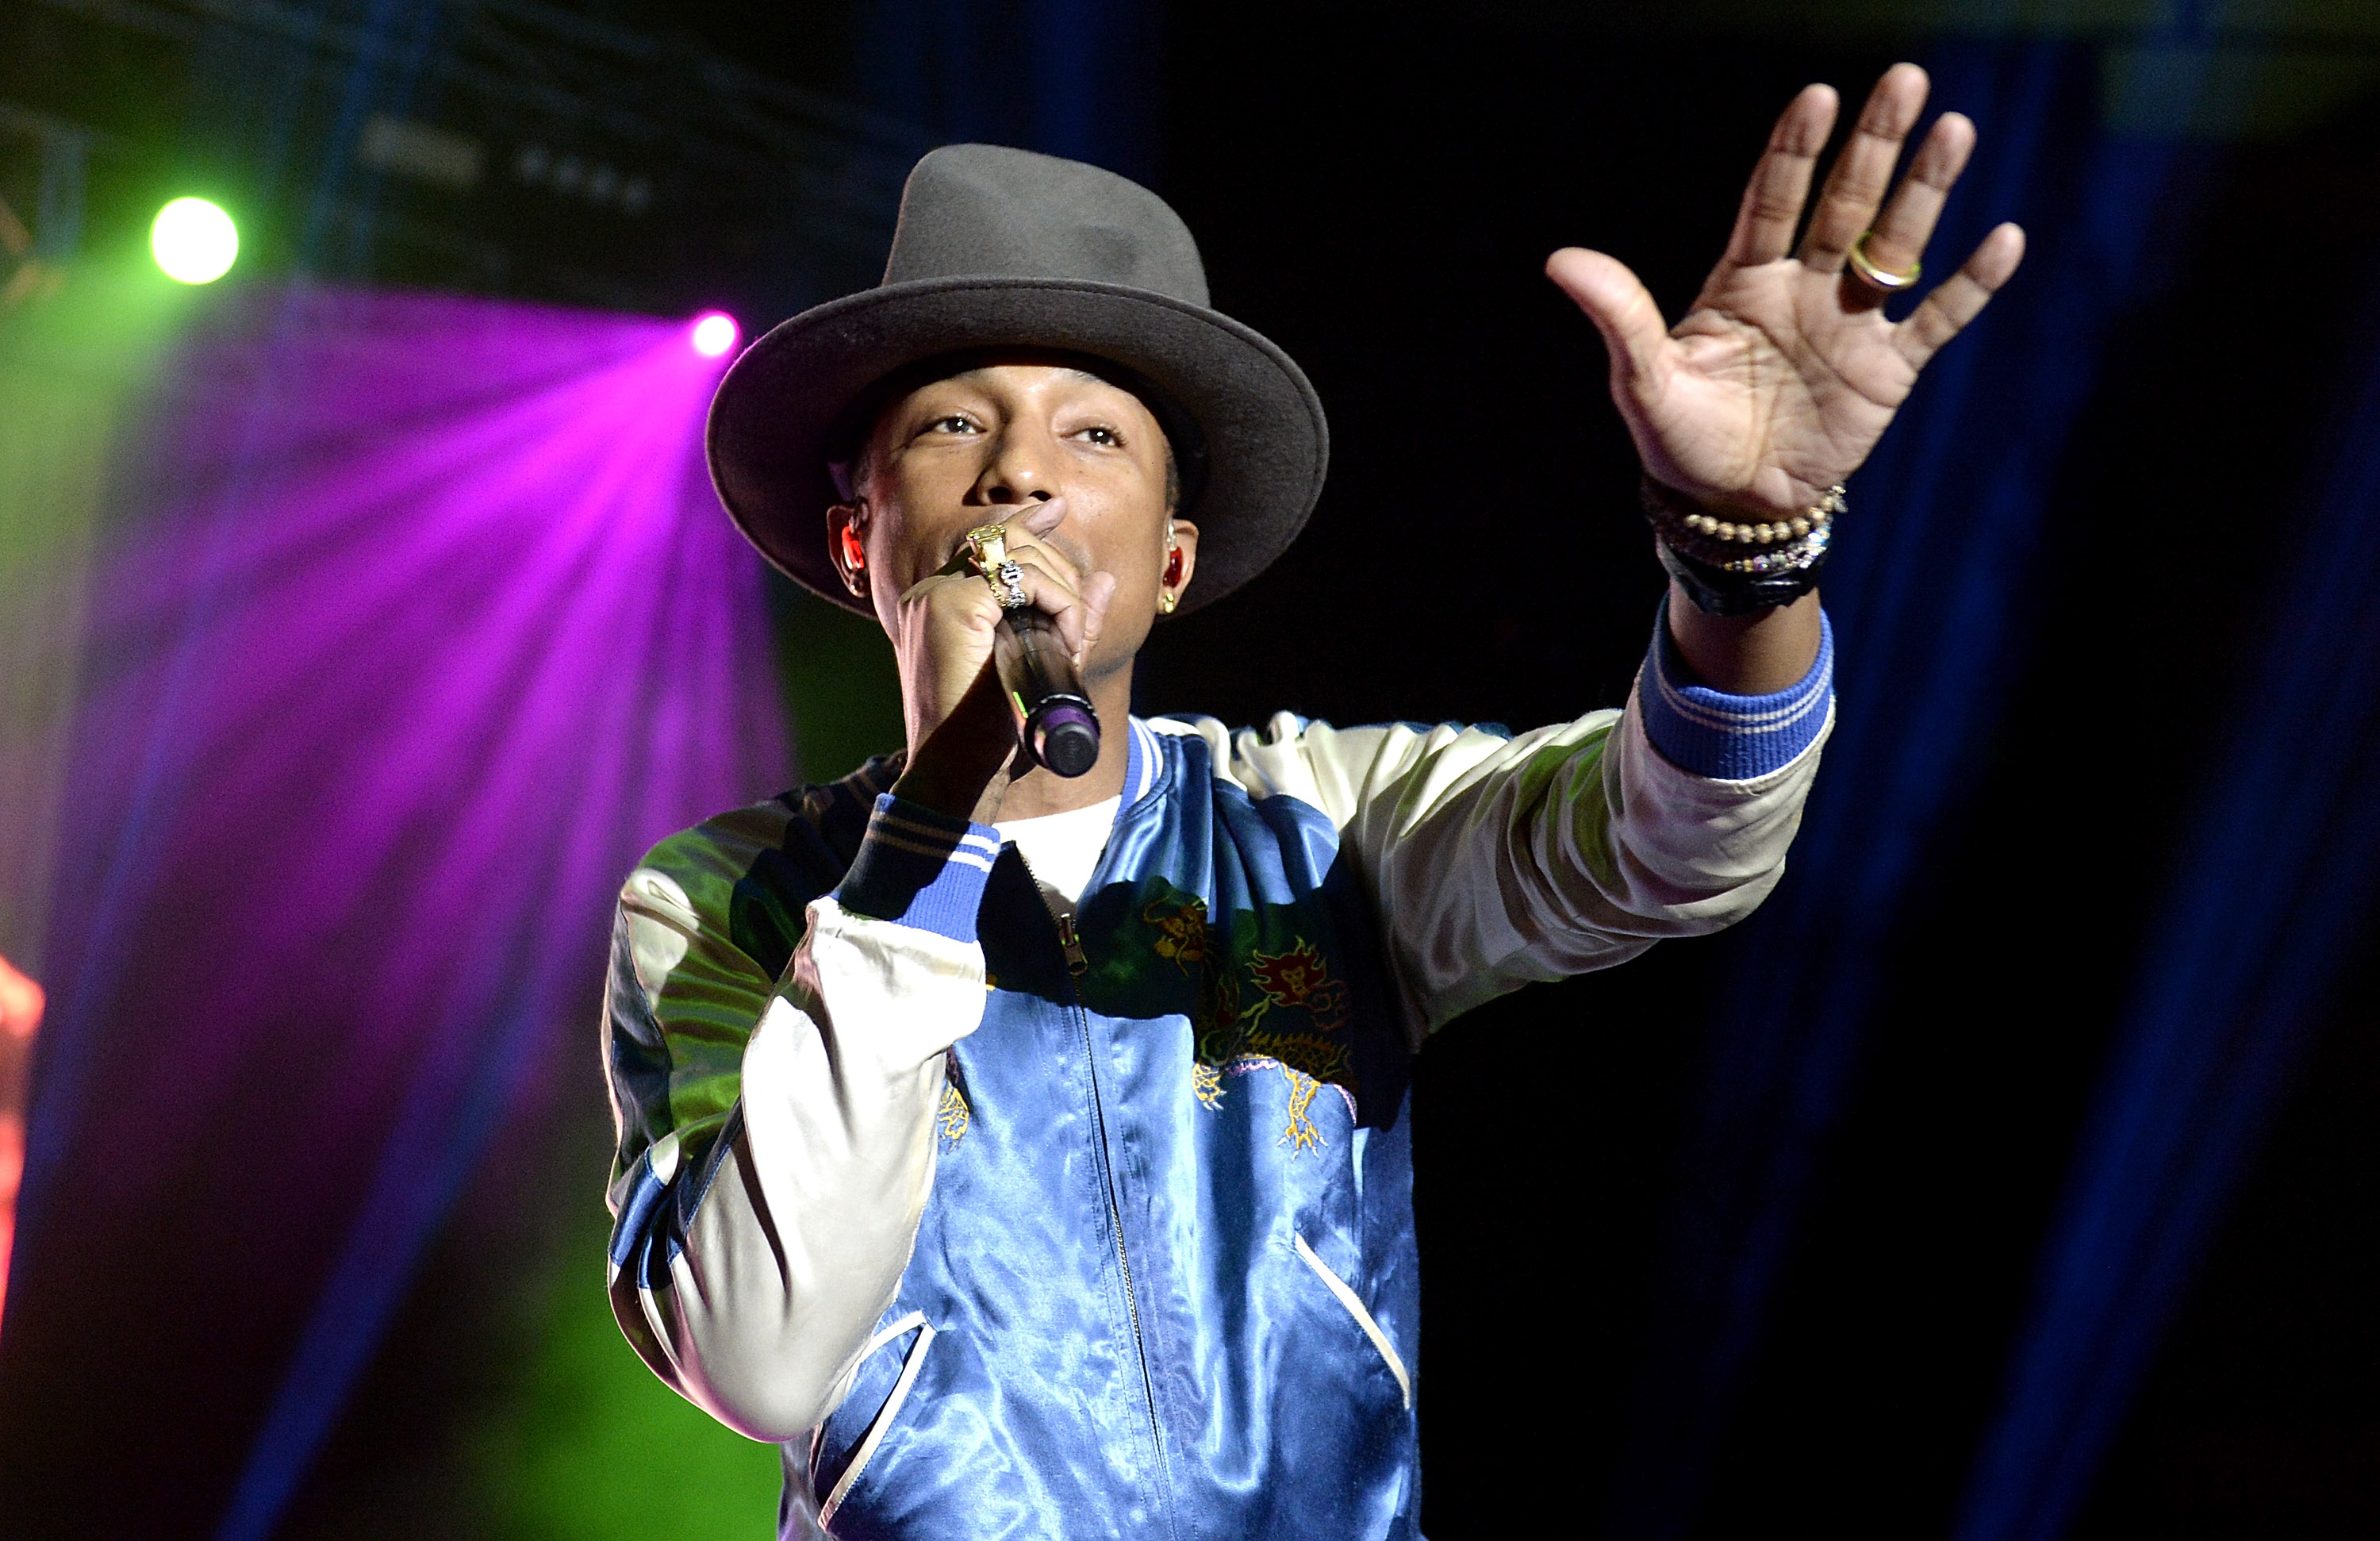 Pharrell performs live at The Riverstage on March 12, 2014 in Brisbane, Australia.